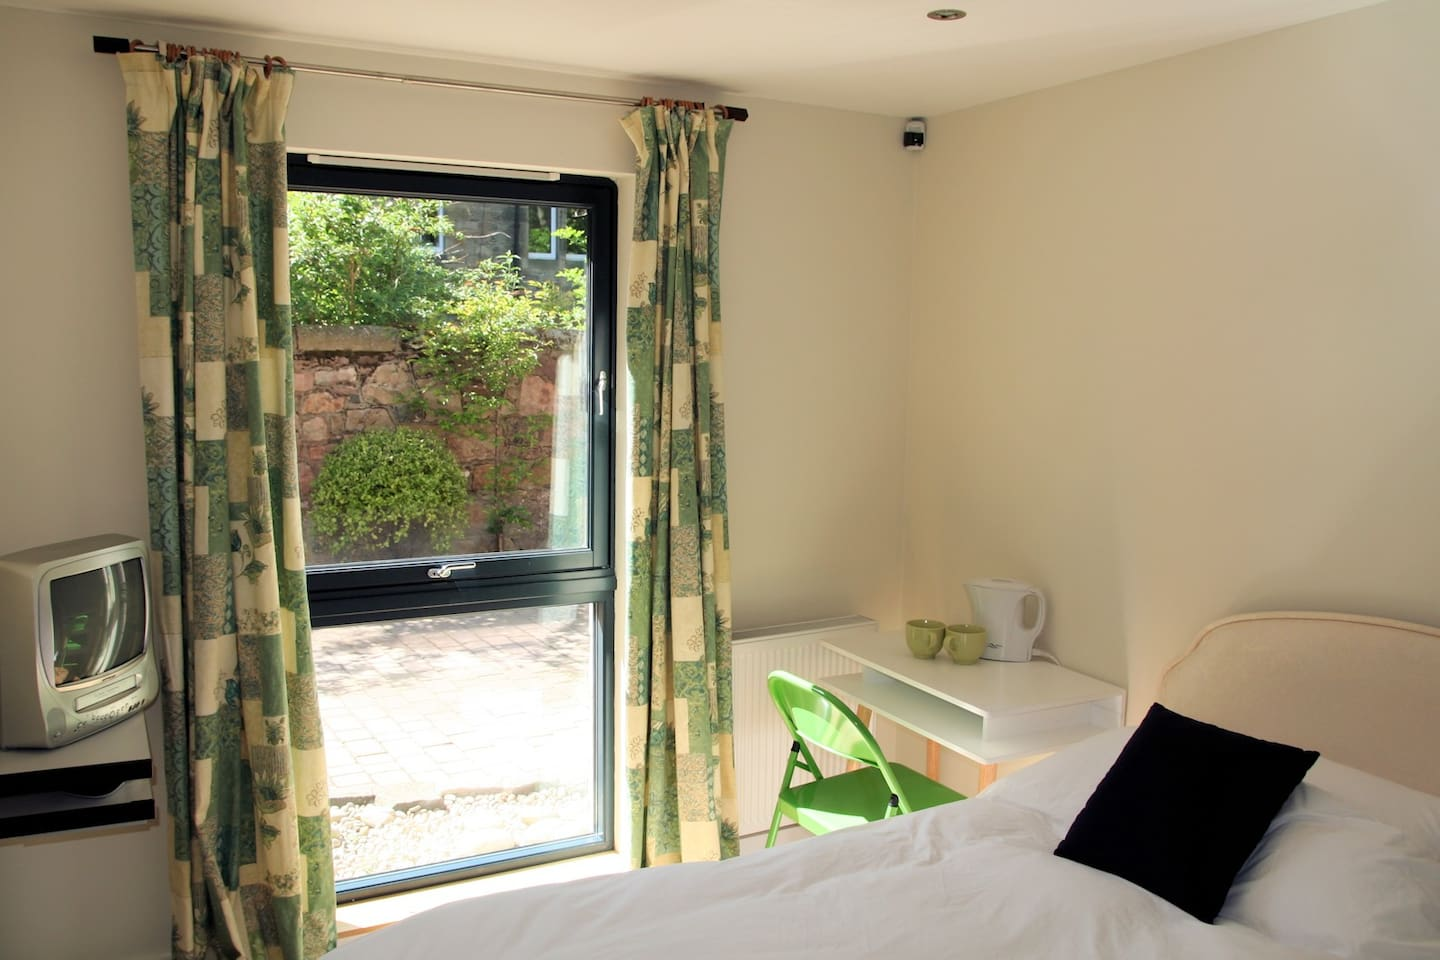 A lovely sunny room with a view of traditional tenements